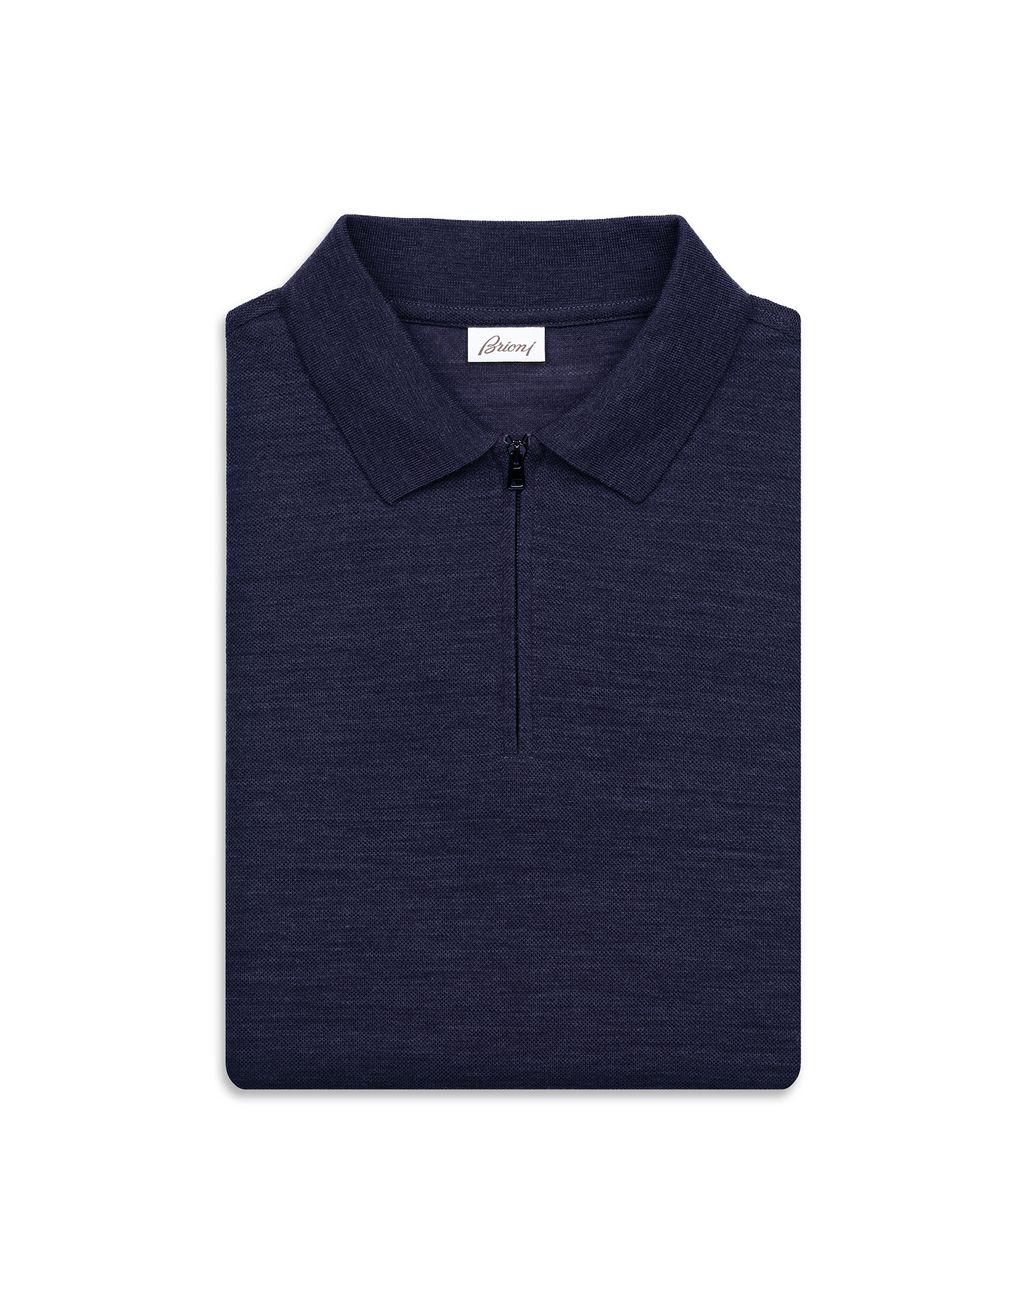 BRIONI Navy Blue Zipped Polo Shirt T-Shirts & Polos Man e